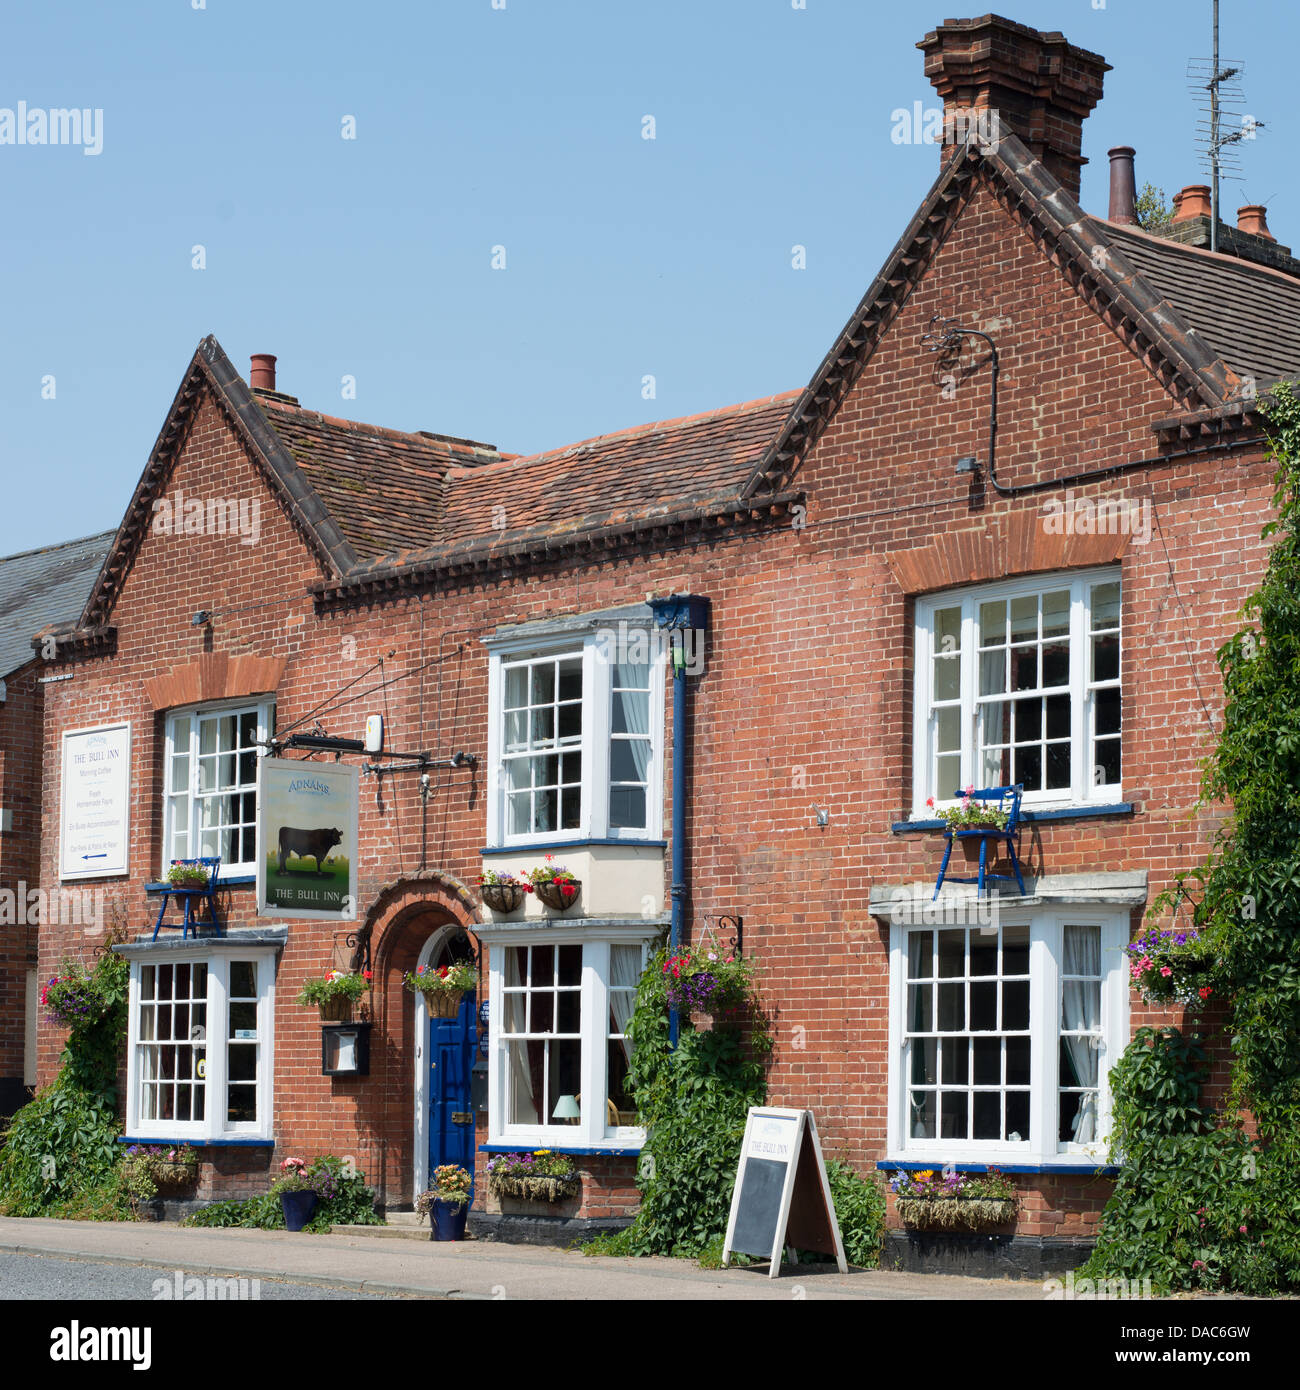 The exterior of the Bull Inn, an Adnams pub in the village of Cavendish in Suffolk, England. - Stock Image